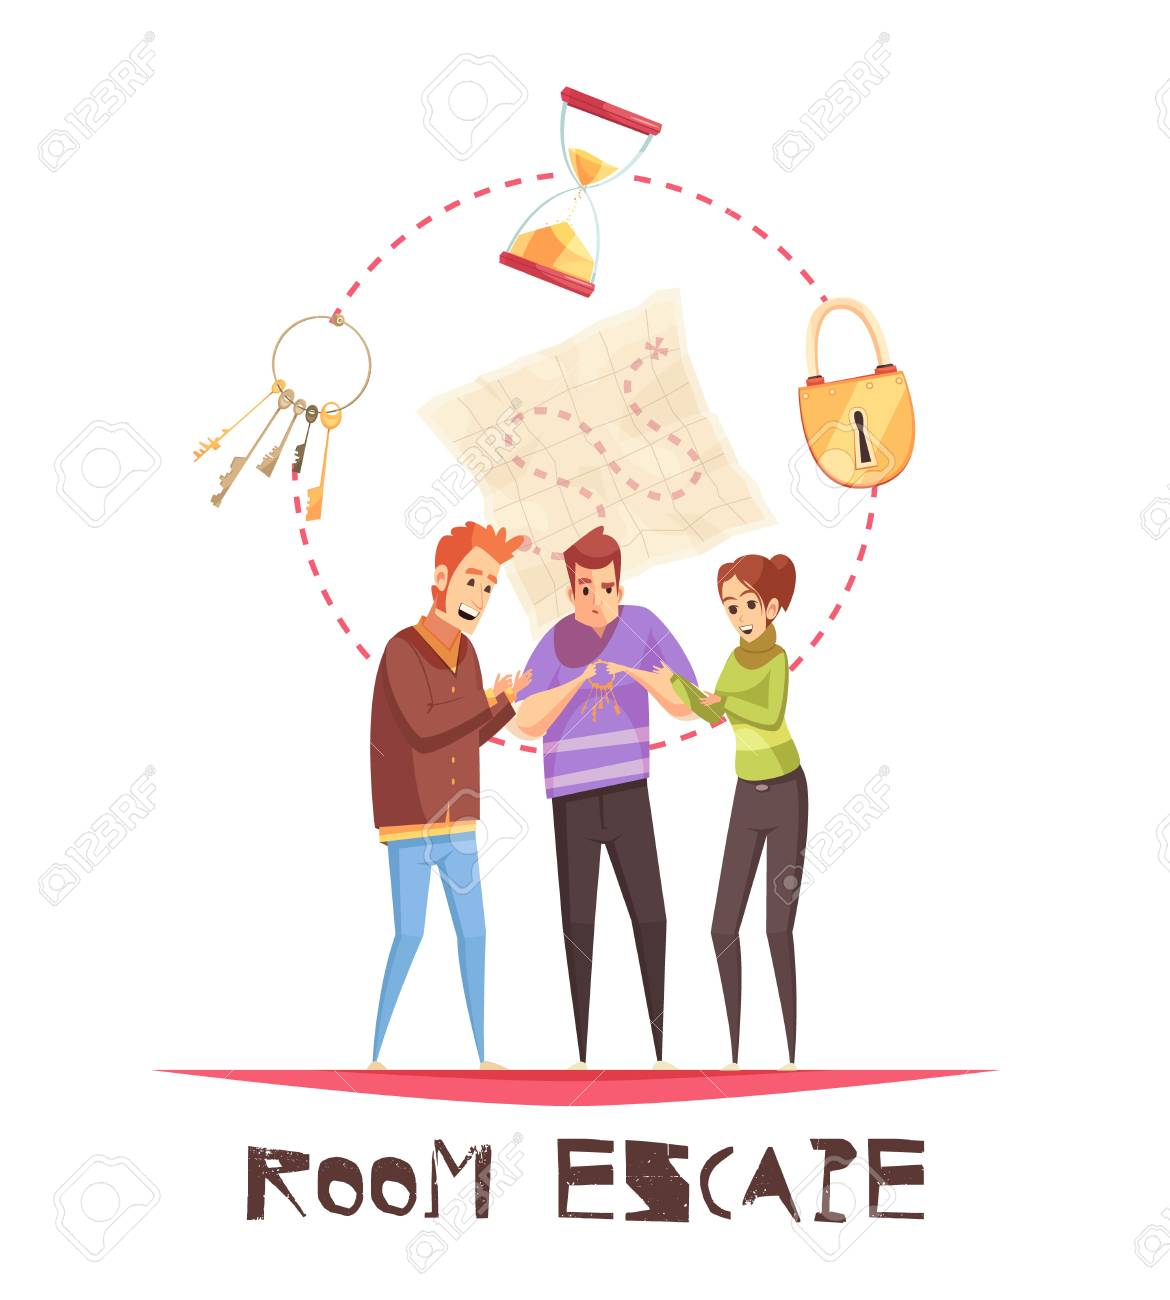 Room escape design concept with three adult gamers figurines and lock clock keys cartoon icons vector illustration - 96398762